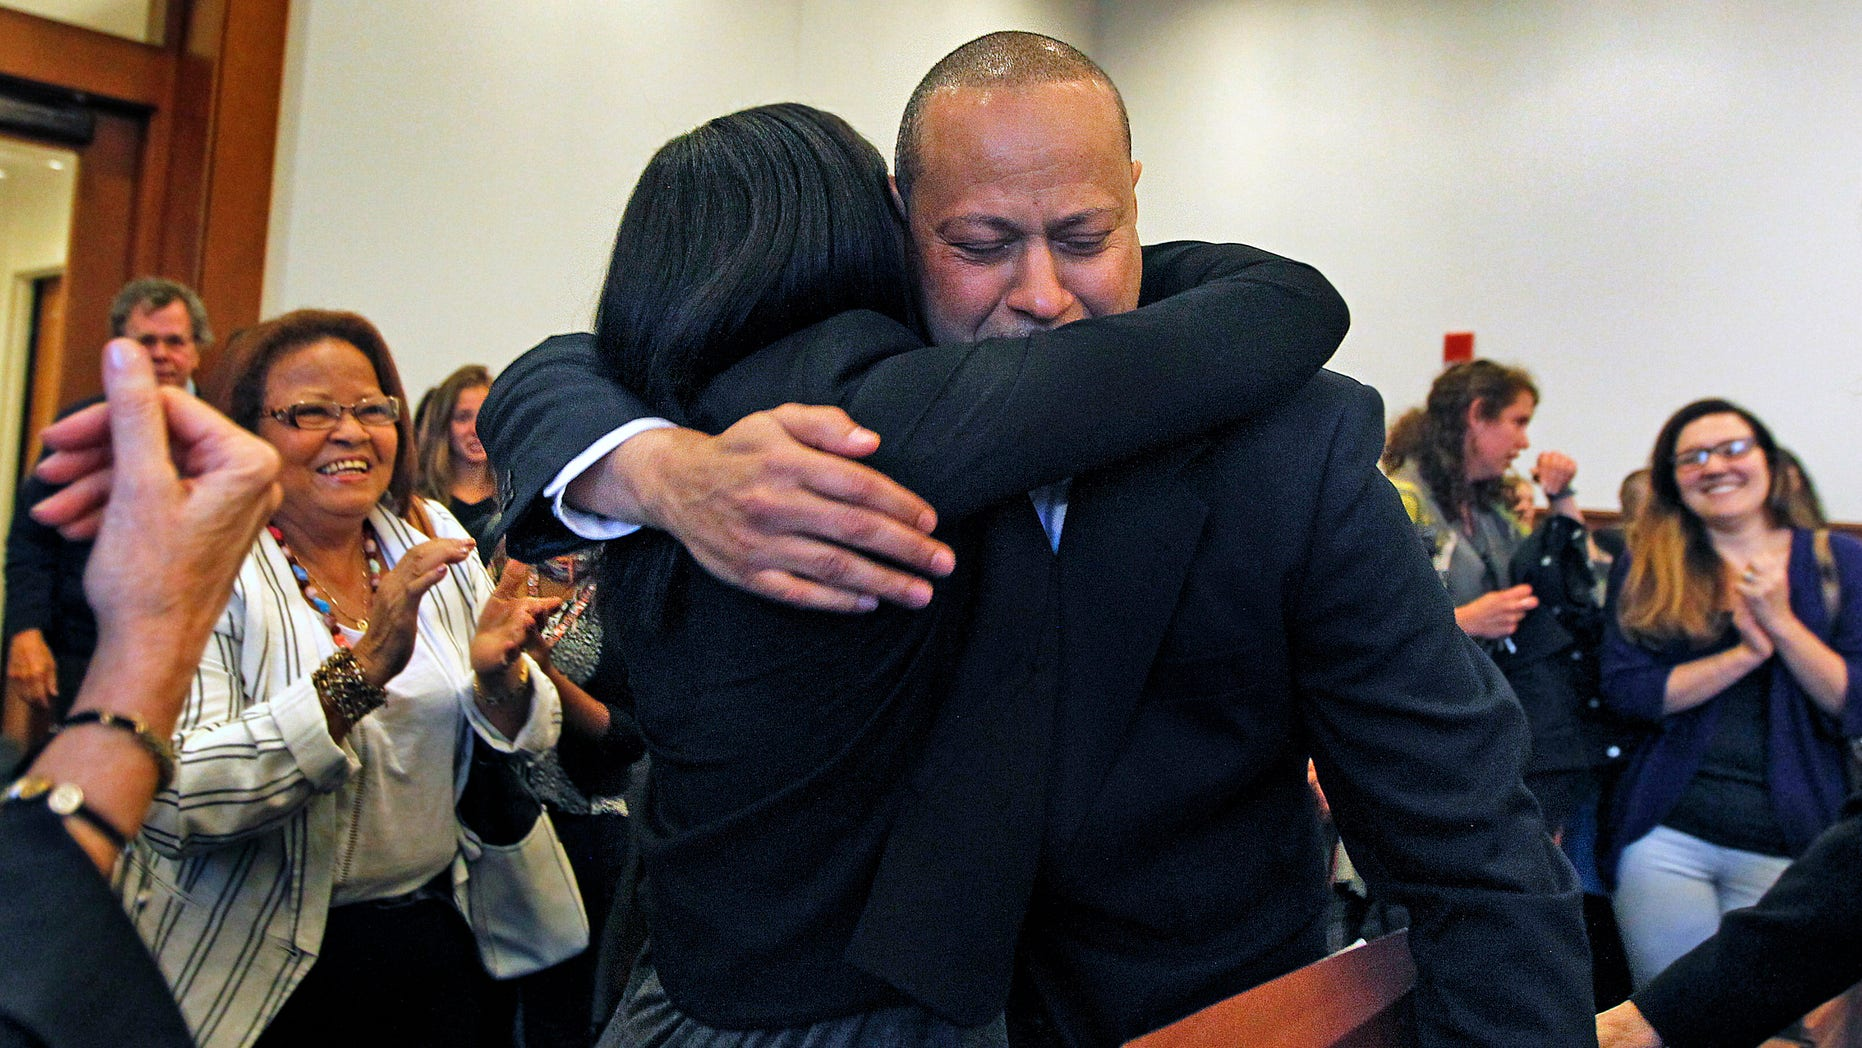 Angel Echavarria hugs his daughter after he is released in Salem Superior Court on May 18, 2015.